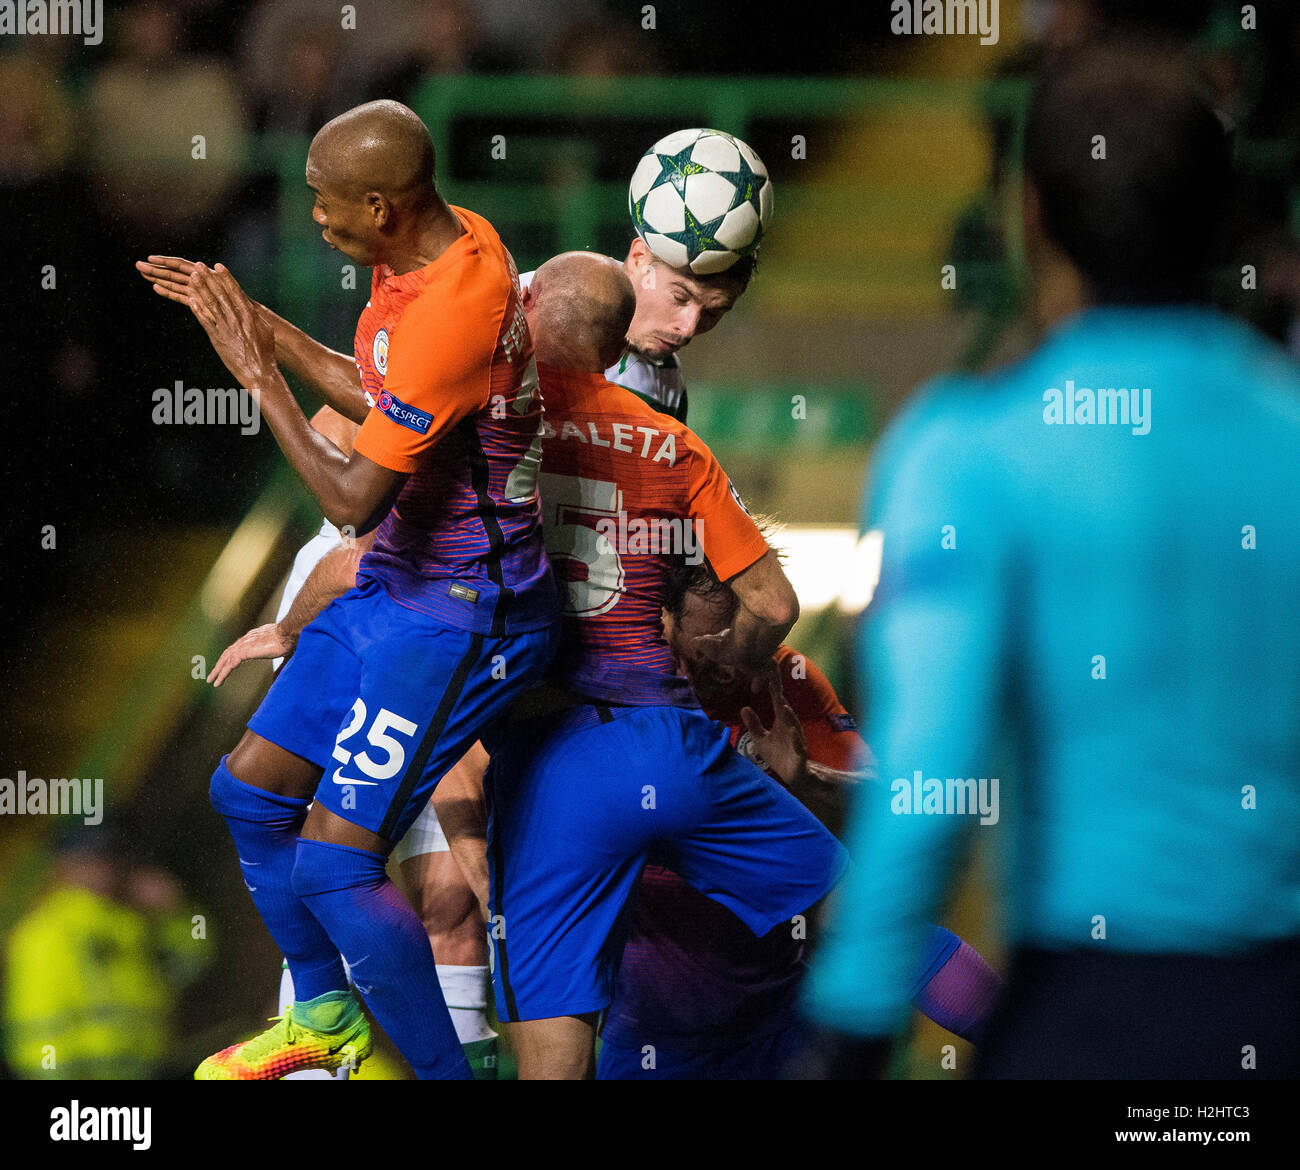 Celtic's Nir Bitton competes for the ball during the UEFA Champions League, Group C match at Celtic Park, Glasgow. - Stock Image